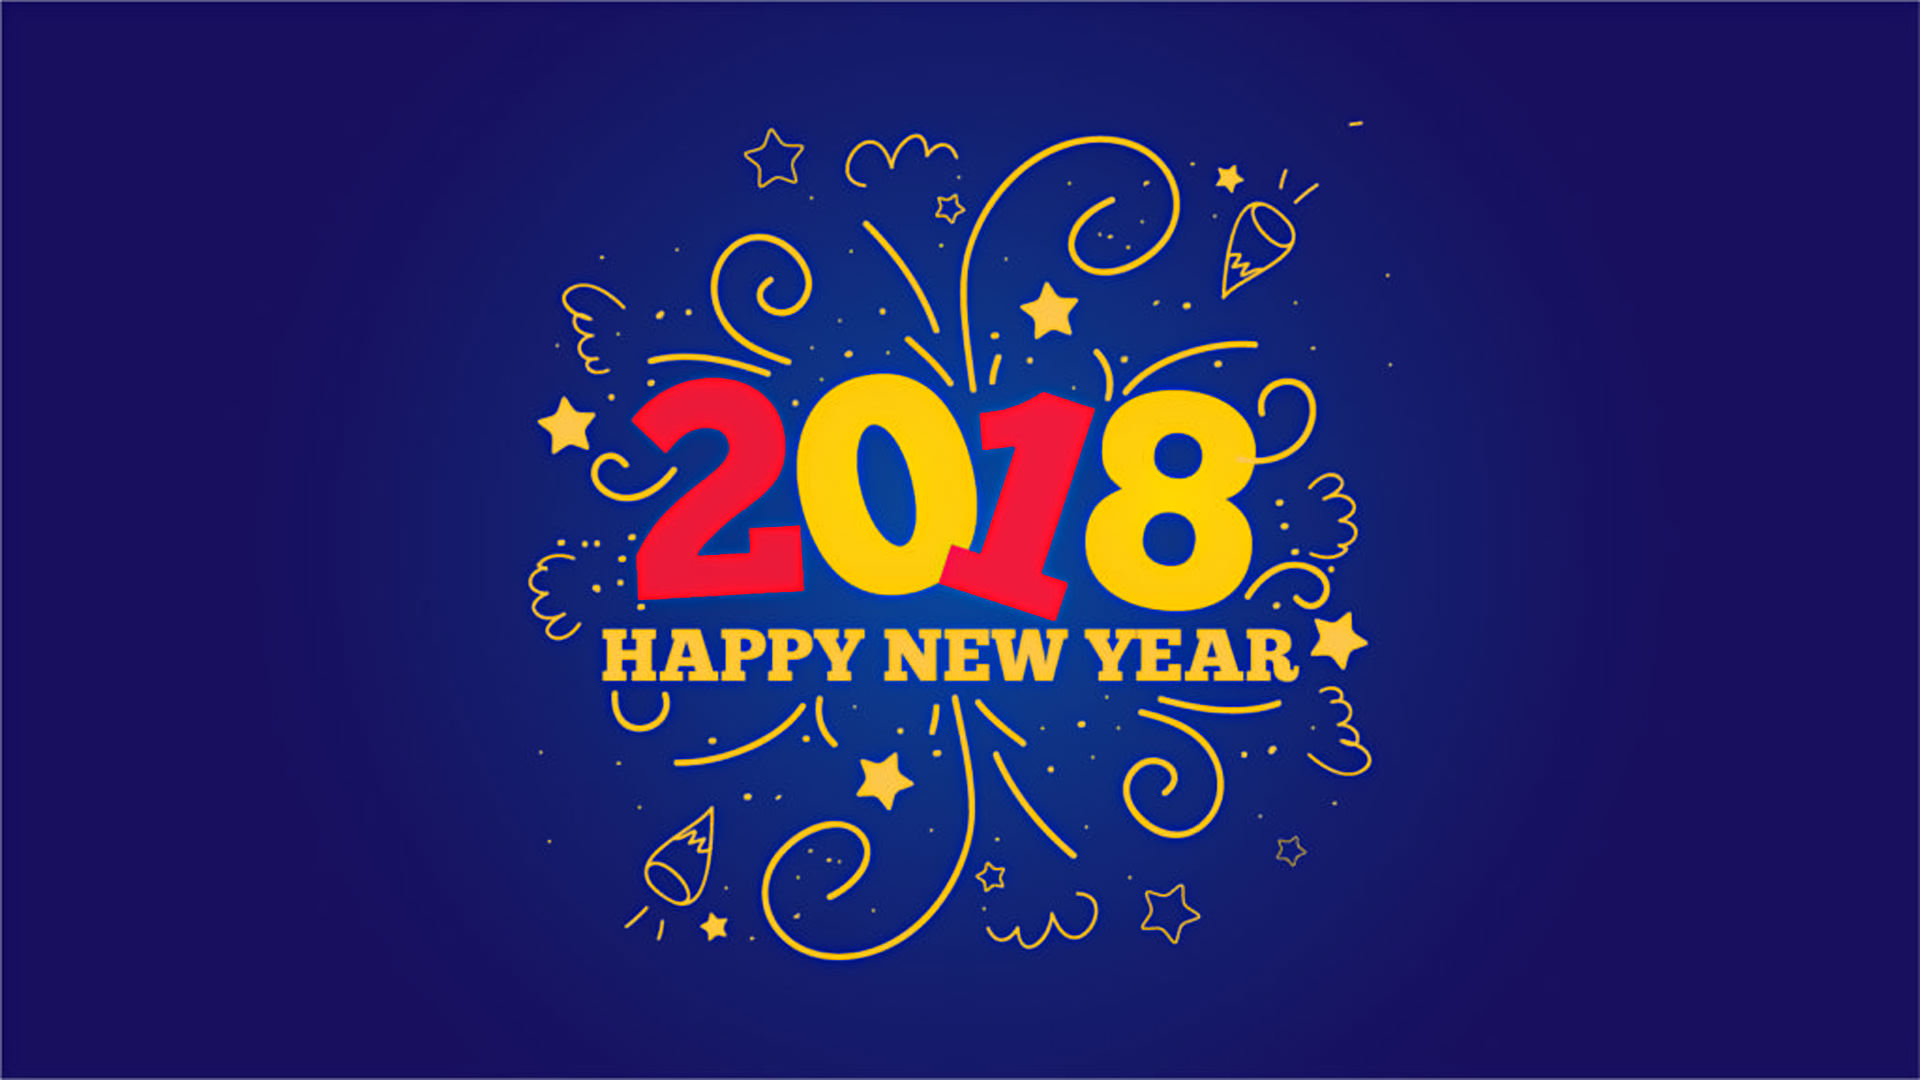 simple new year 2018 wallpaper for desktop pc click here for full size